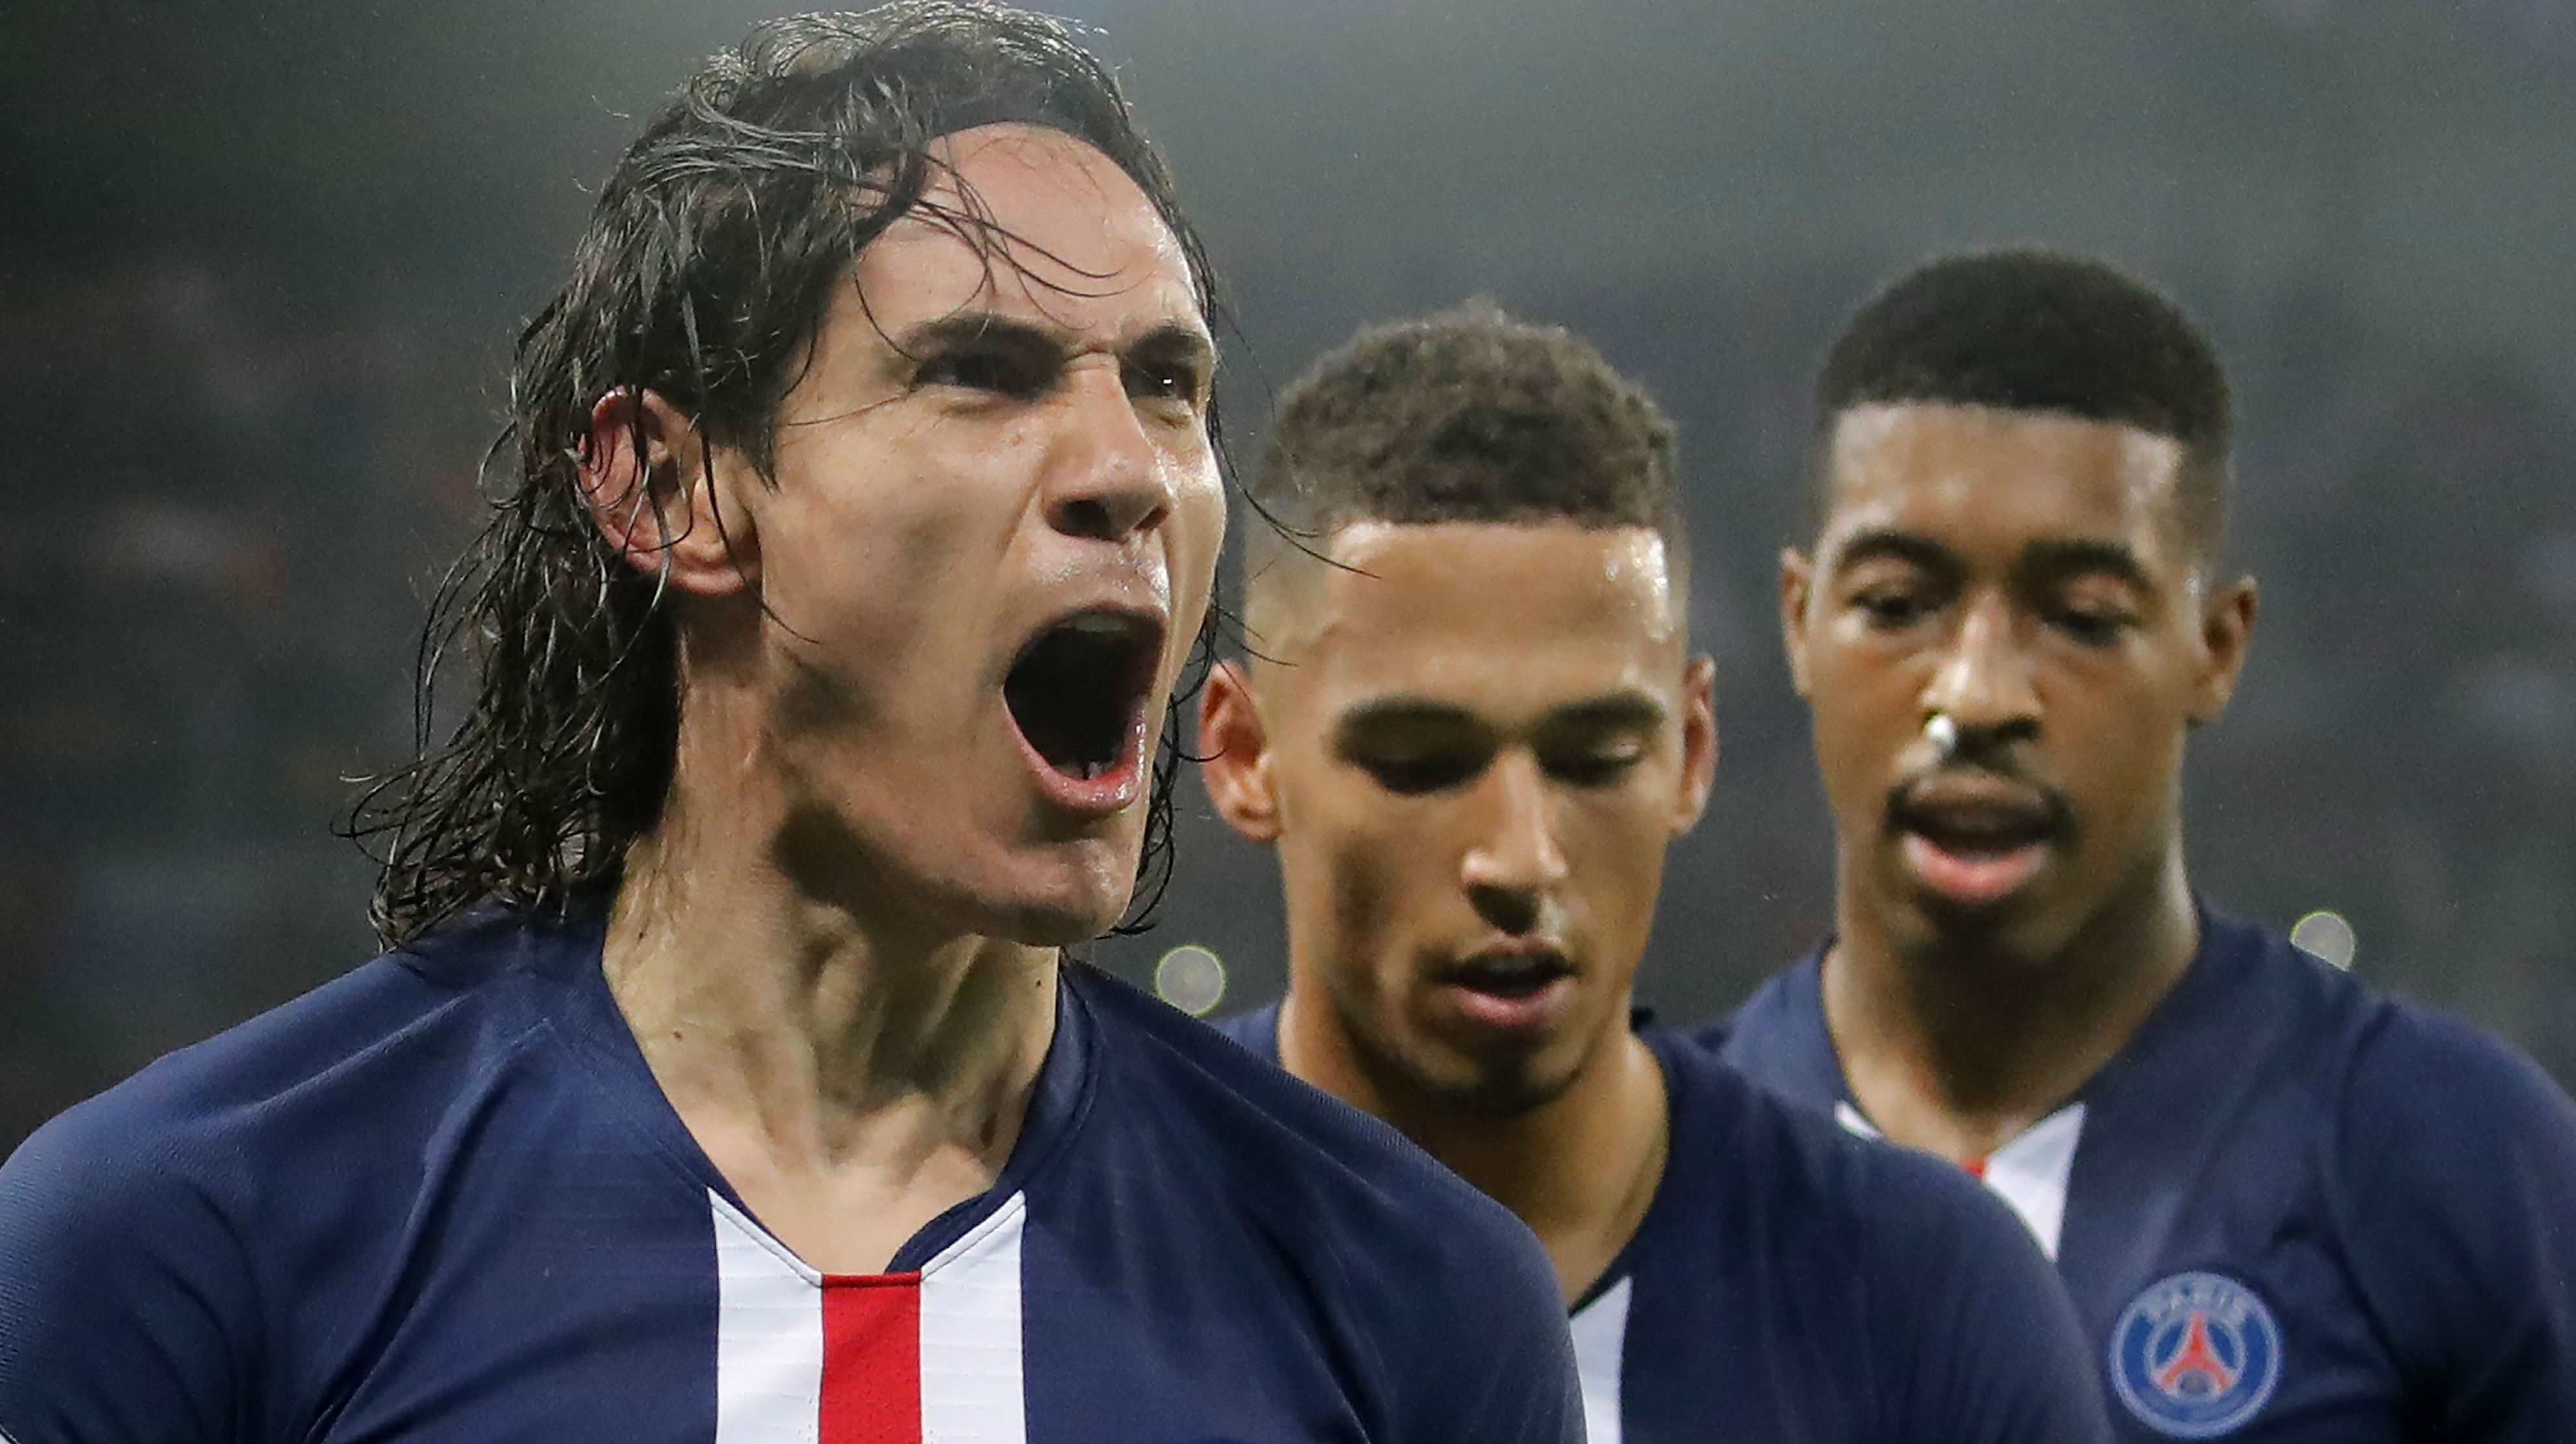 Psg Soccer Club Doc Series In The Works With Amazon Prime Deadline